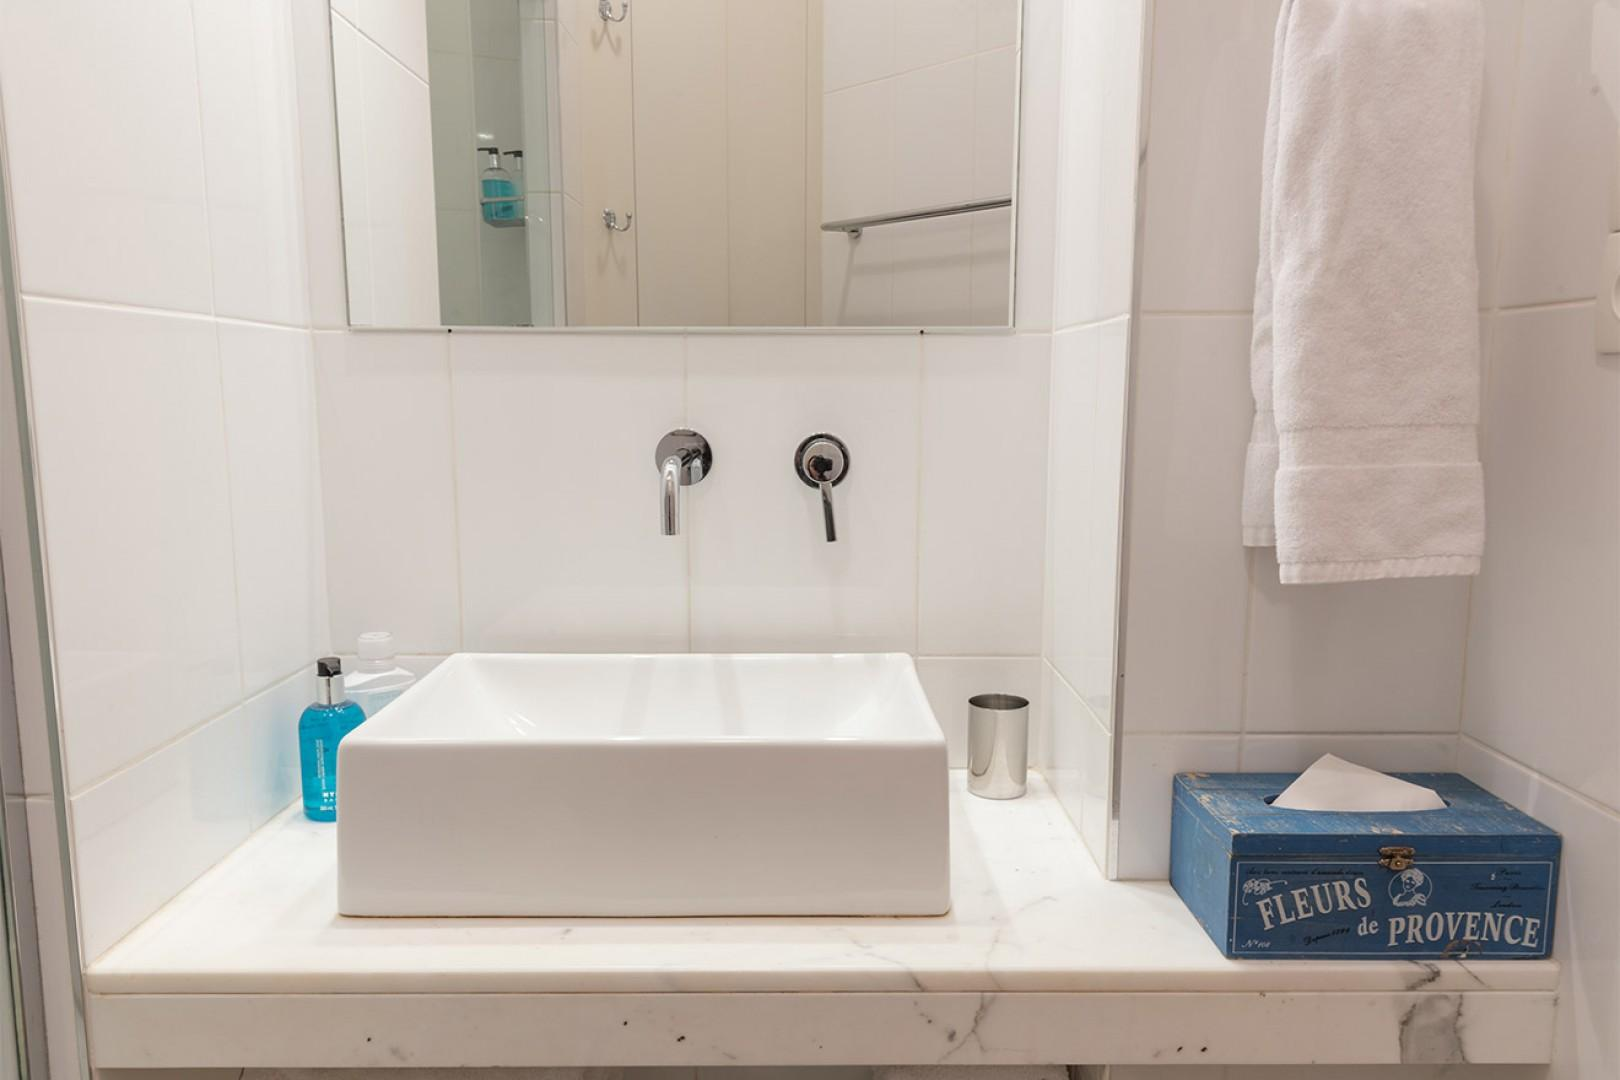 Enjoy the stylish touches and bathroom amenities.